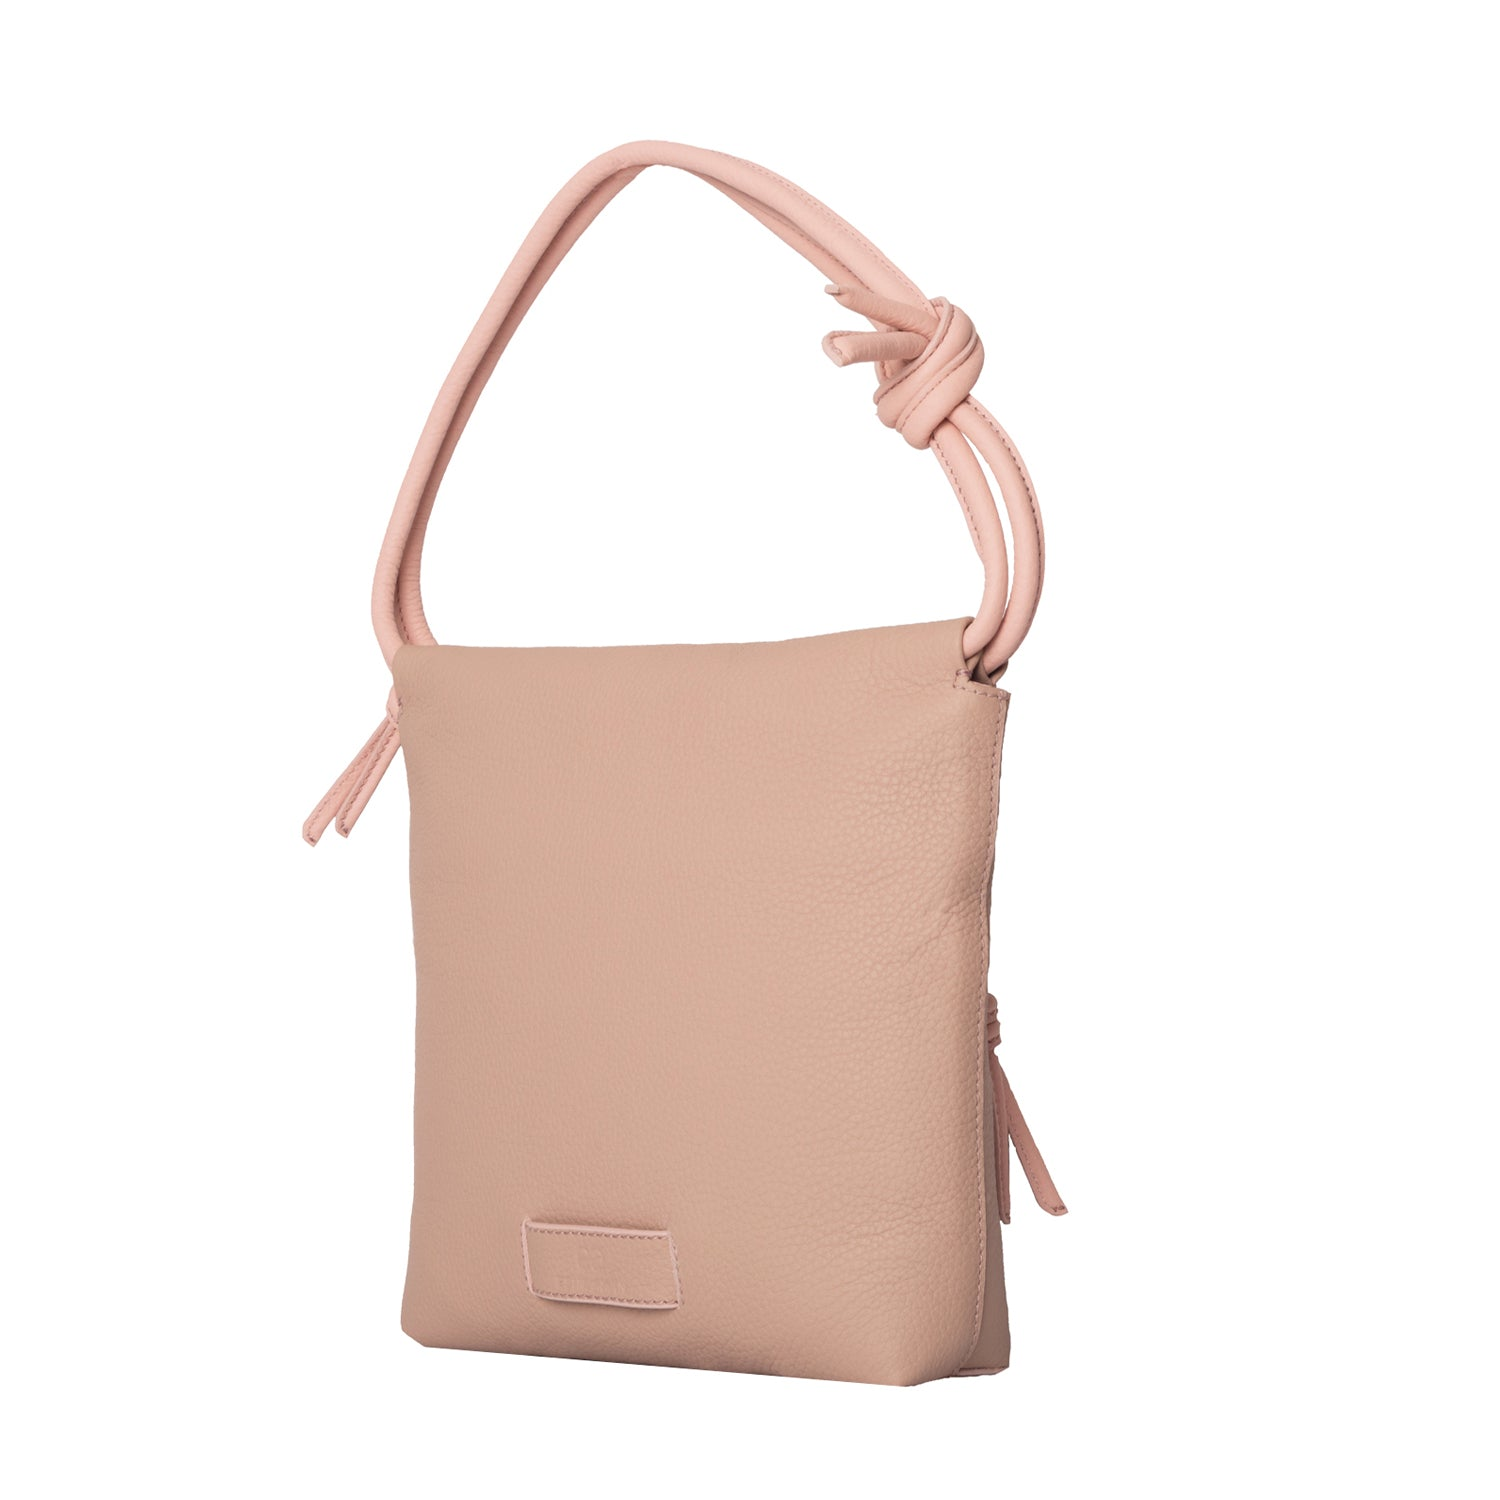 A nude pink convertible leather small shoulder bag with a knot detail on the strap that could be used as a clutch with its roll down feature, side image.